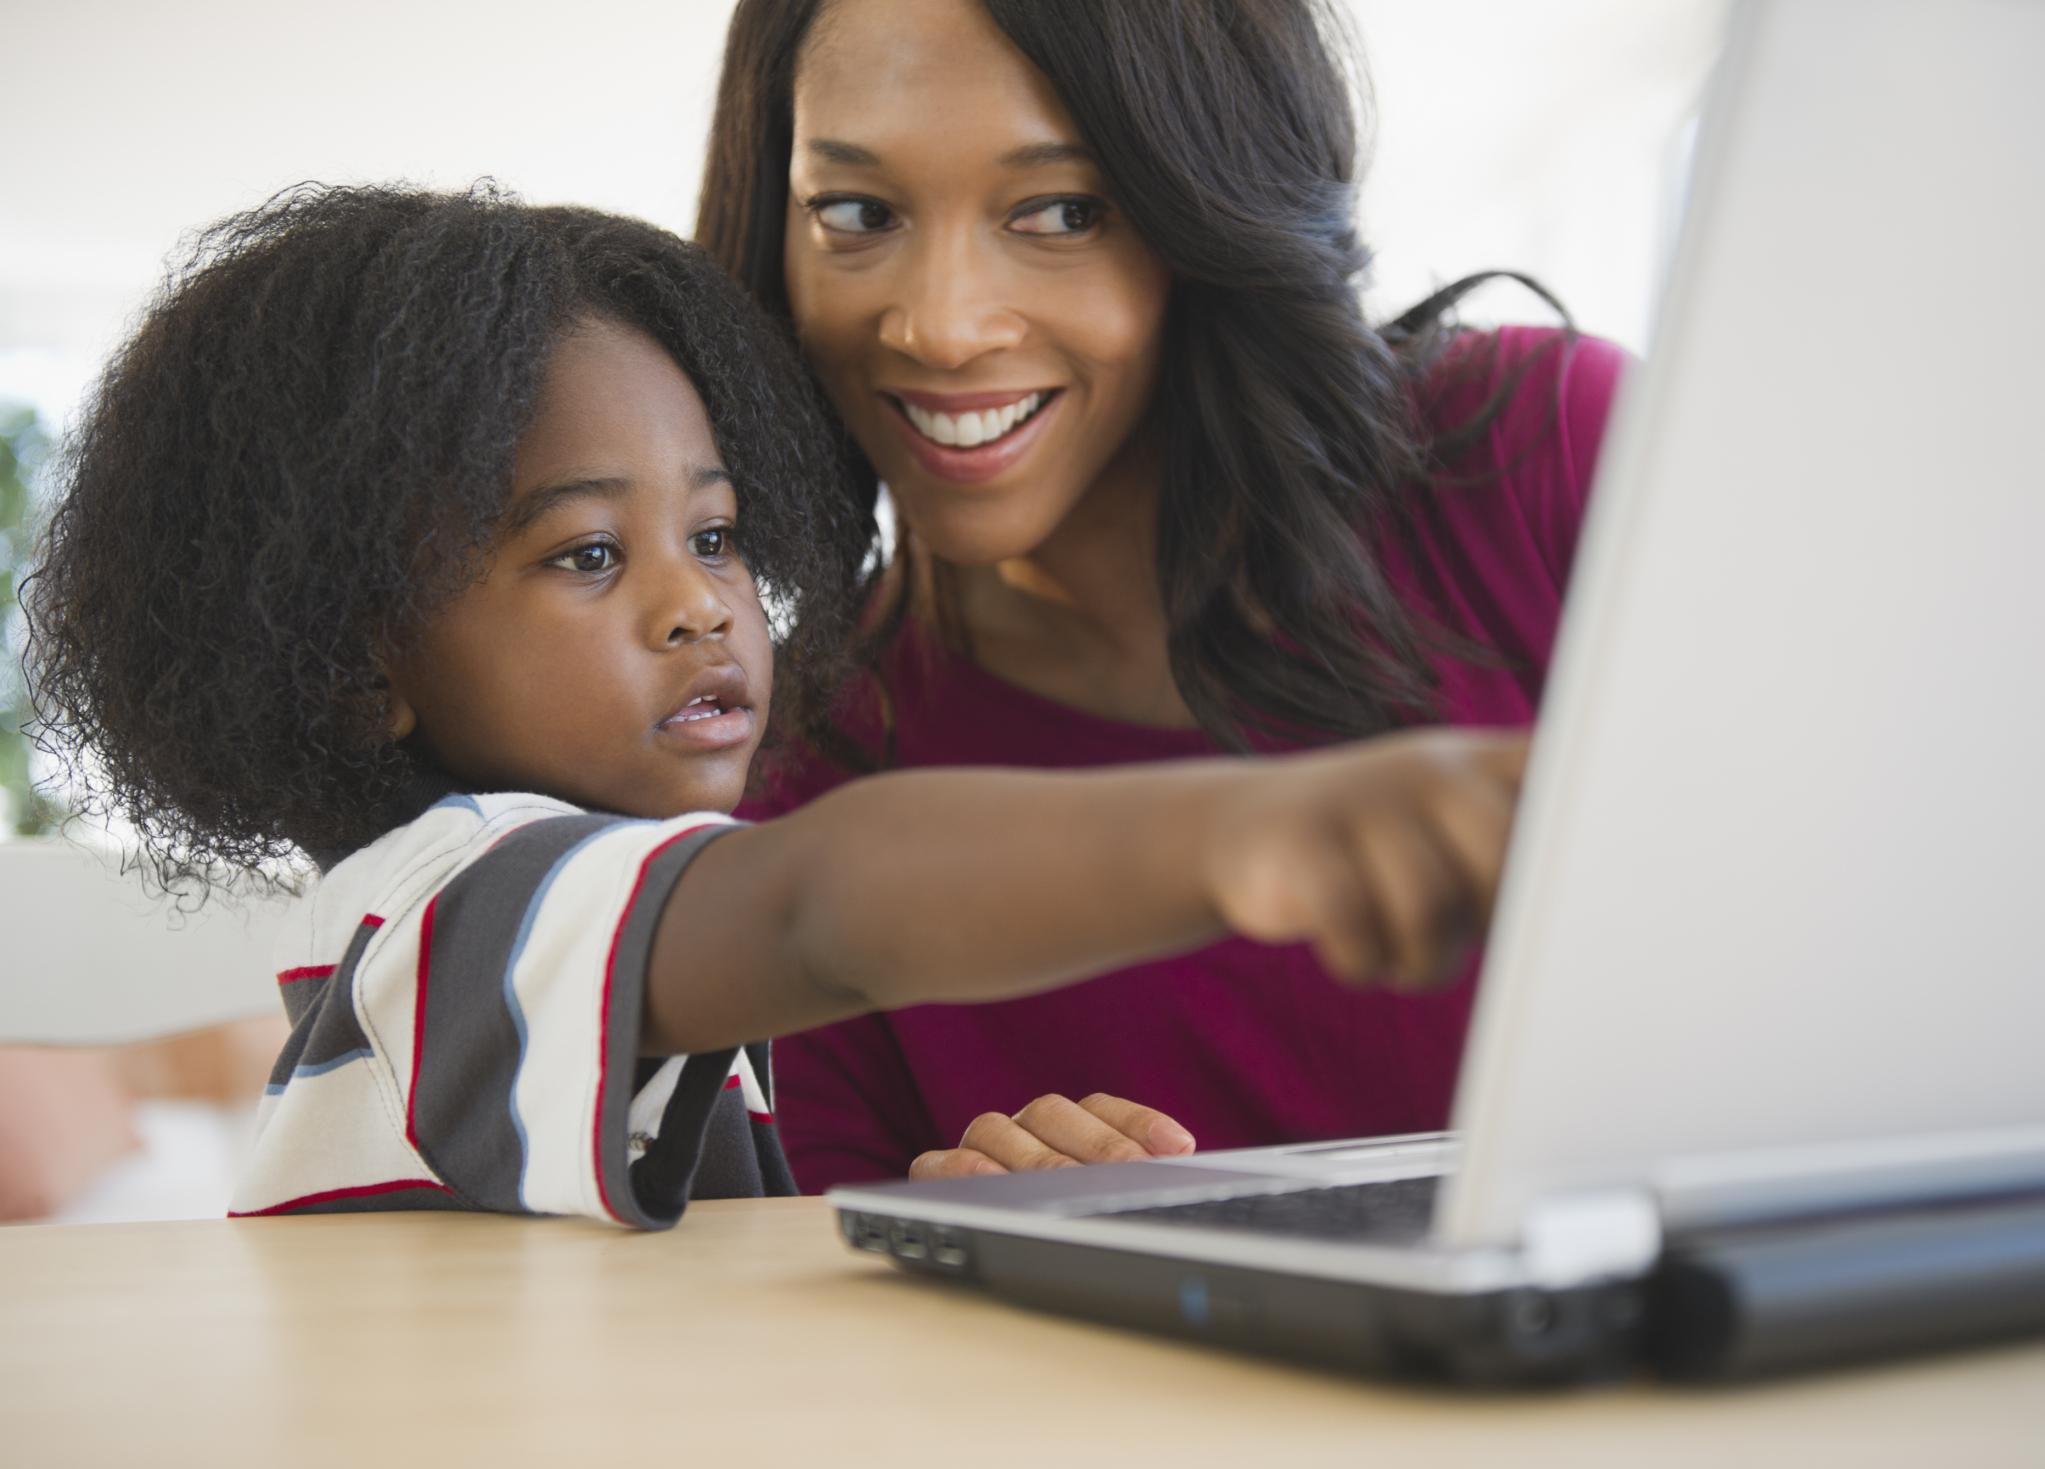 online school vs public school 2 essay Homeschooling vs public schools: the pros and cons of homeschooling the decision of whether to home school a child or to send a child to public school is a personal one.